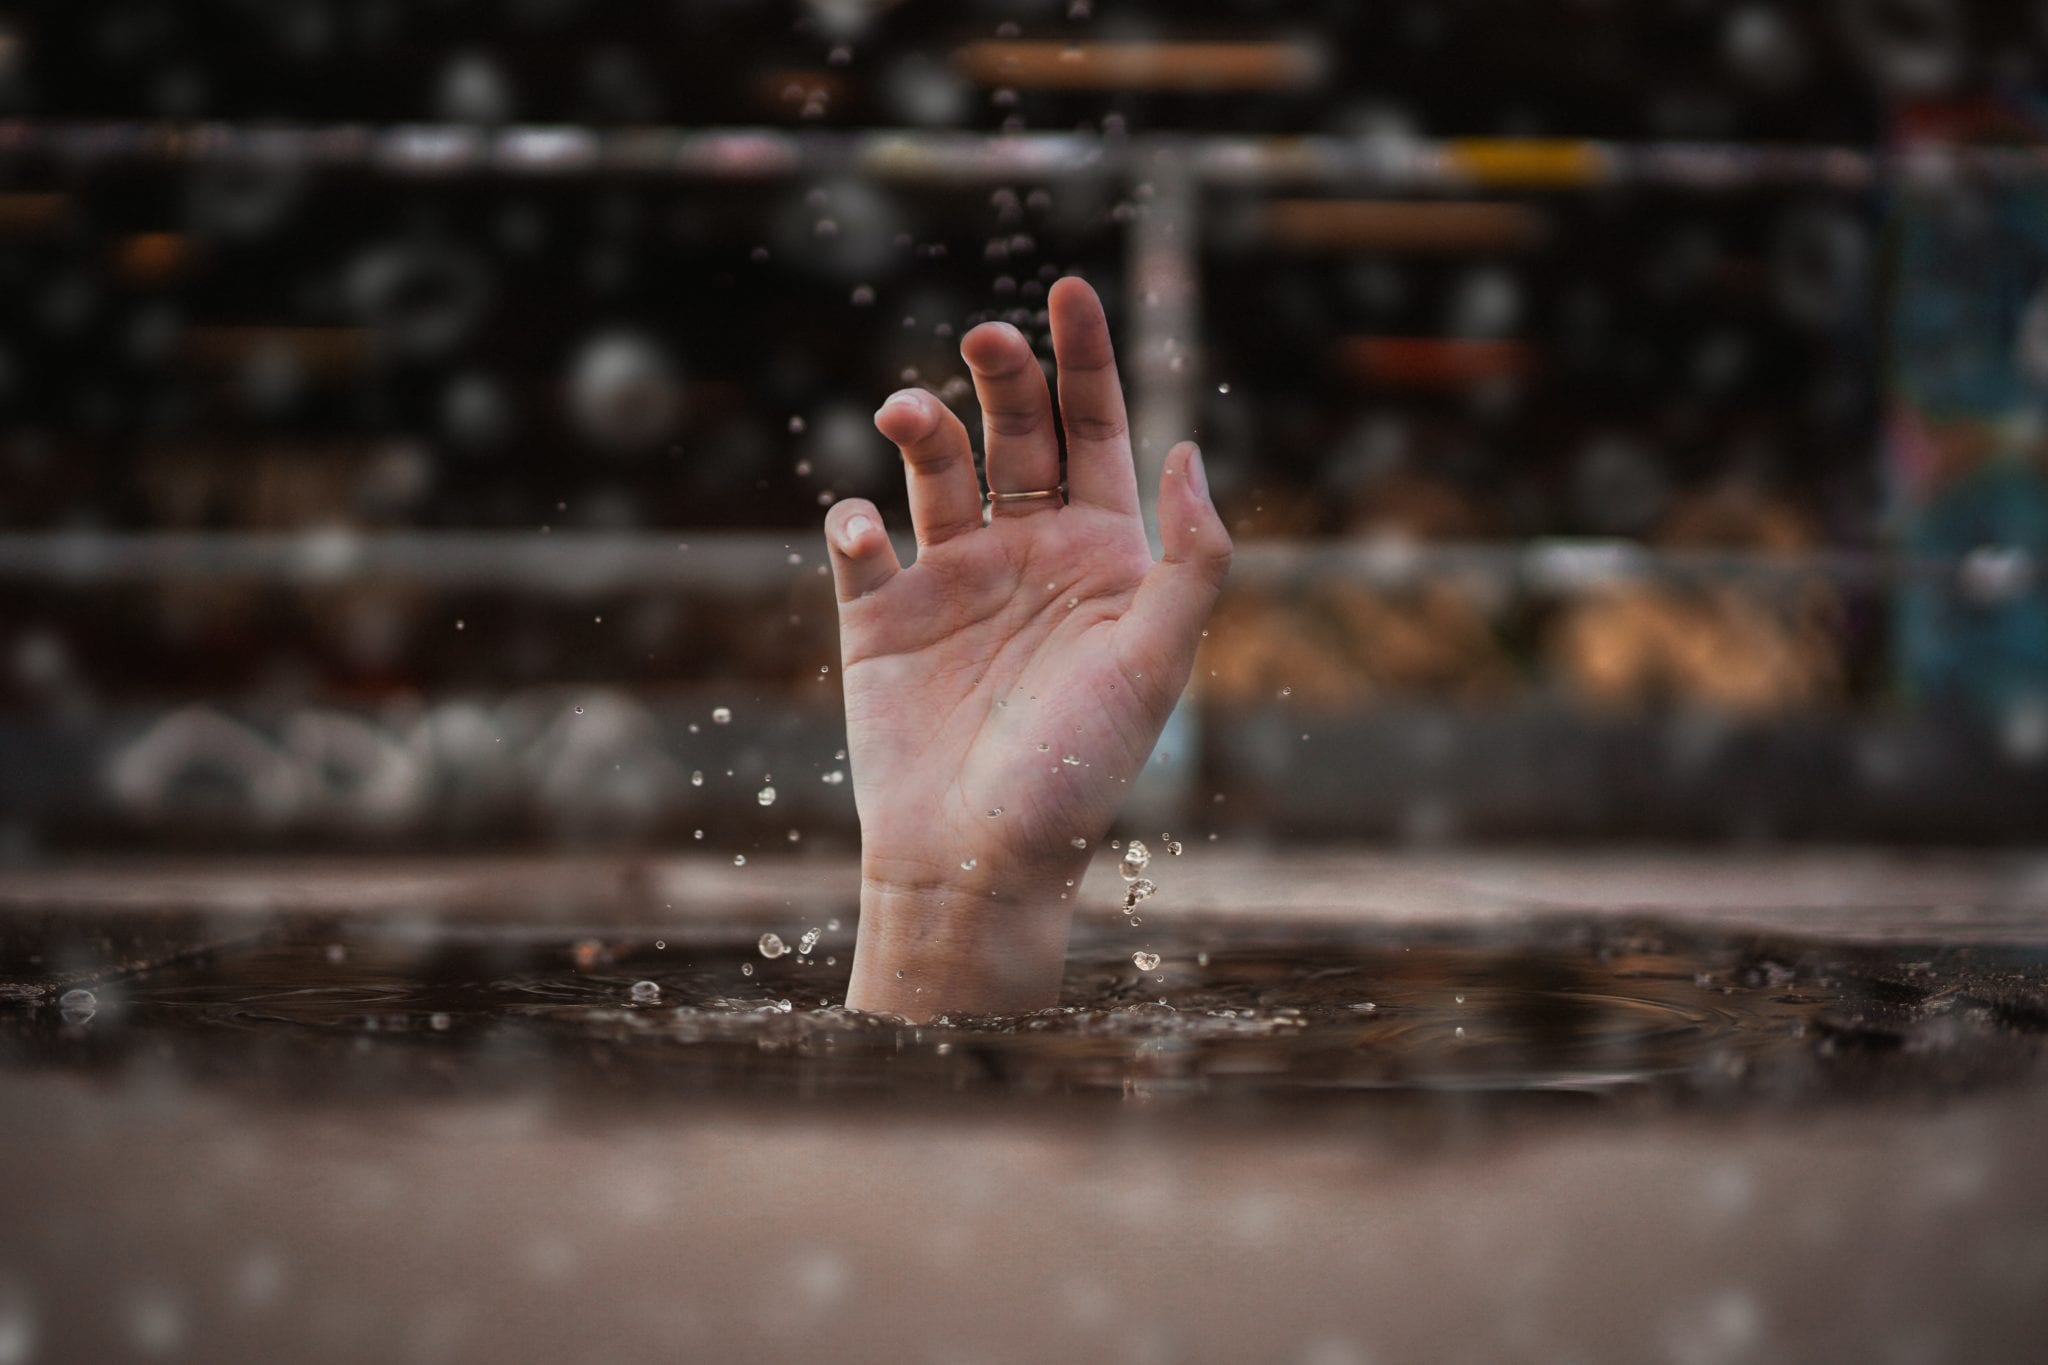 person drowning extending a hand above the water for help